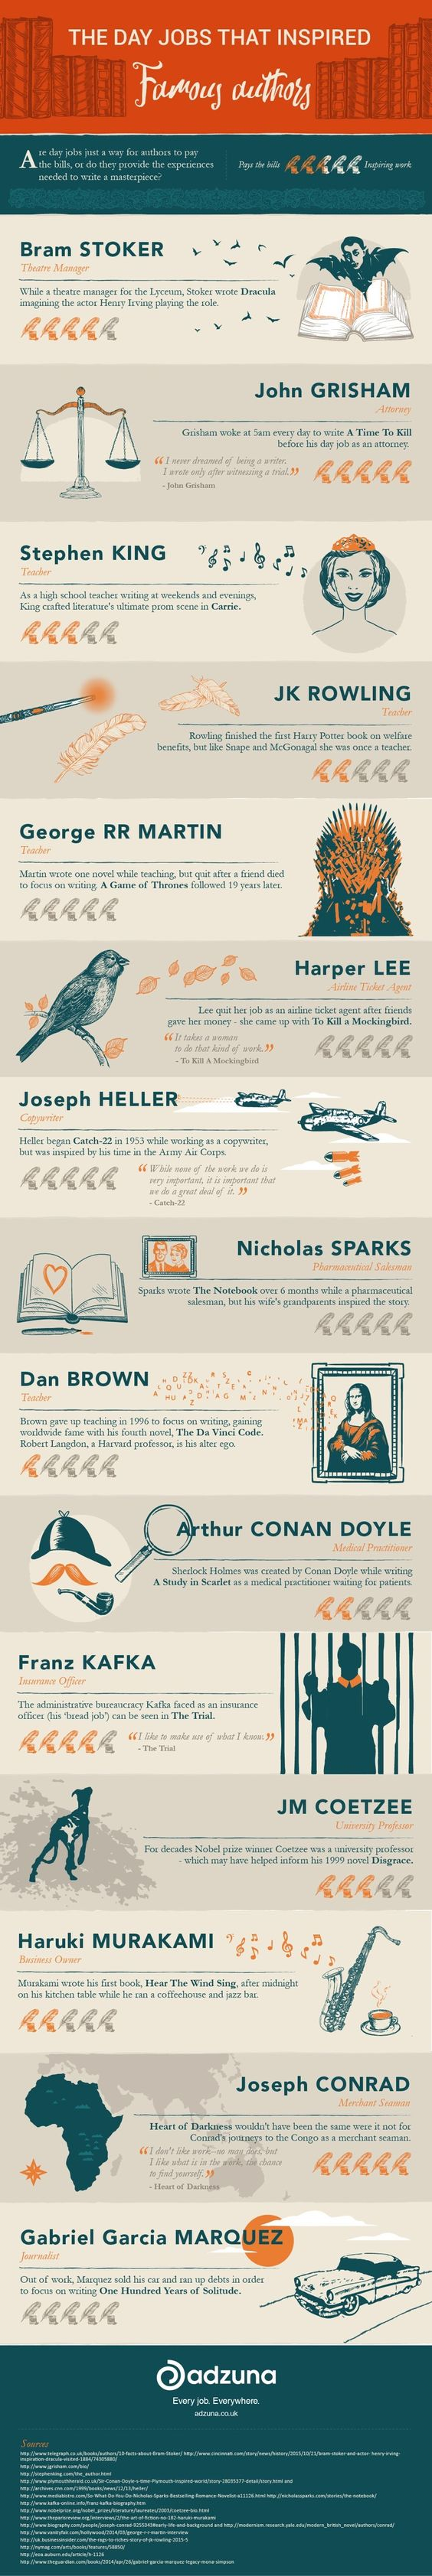 day jobs that inspired big authors infographic teaching we already know that some great authors had really weird jobs before they started to seriously think about writing books the new